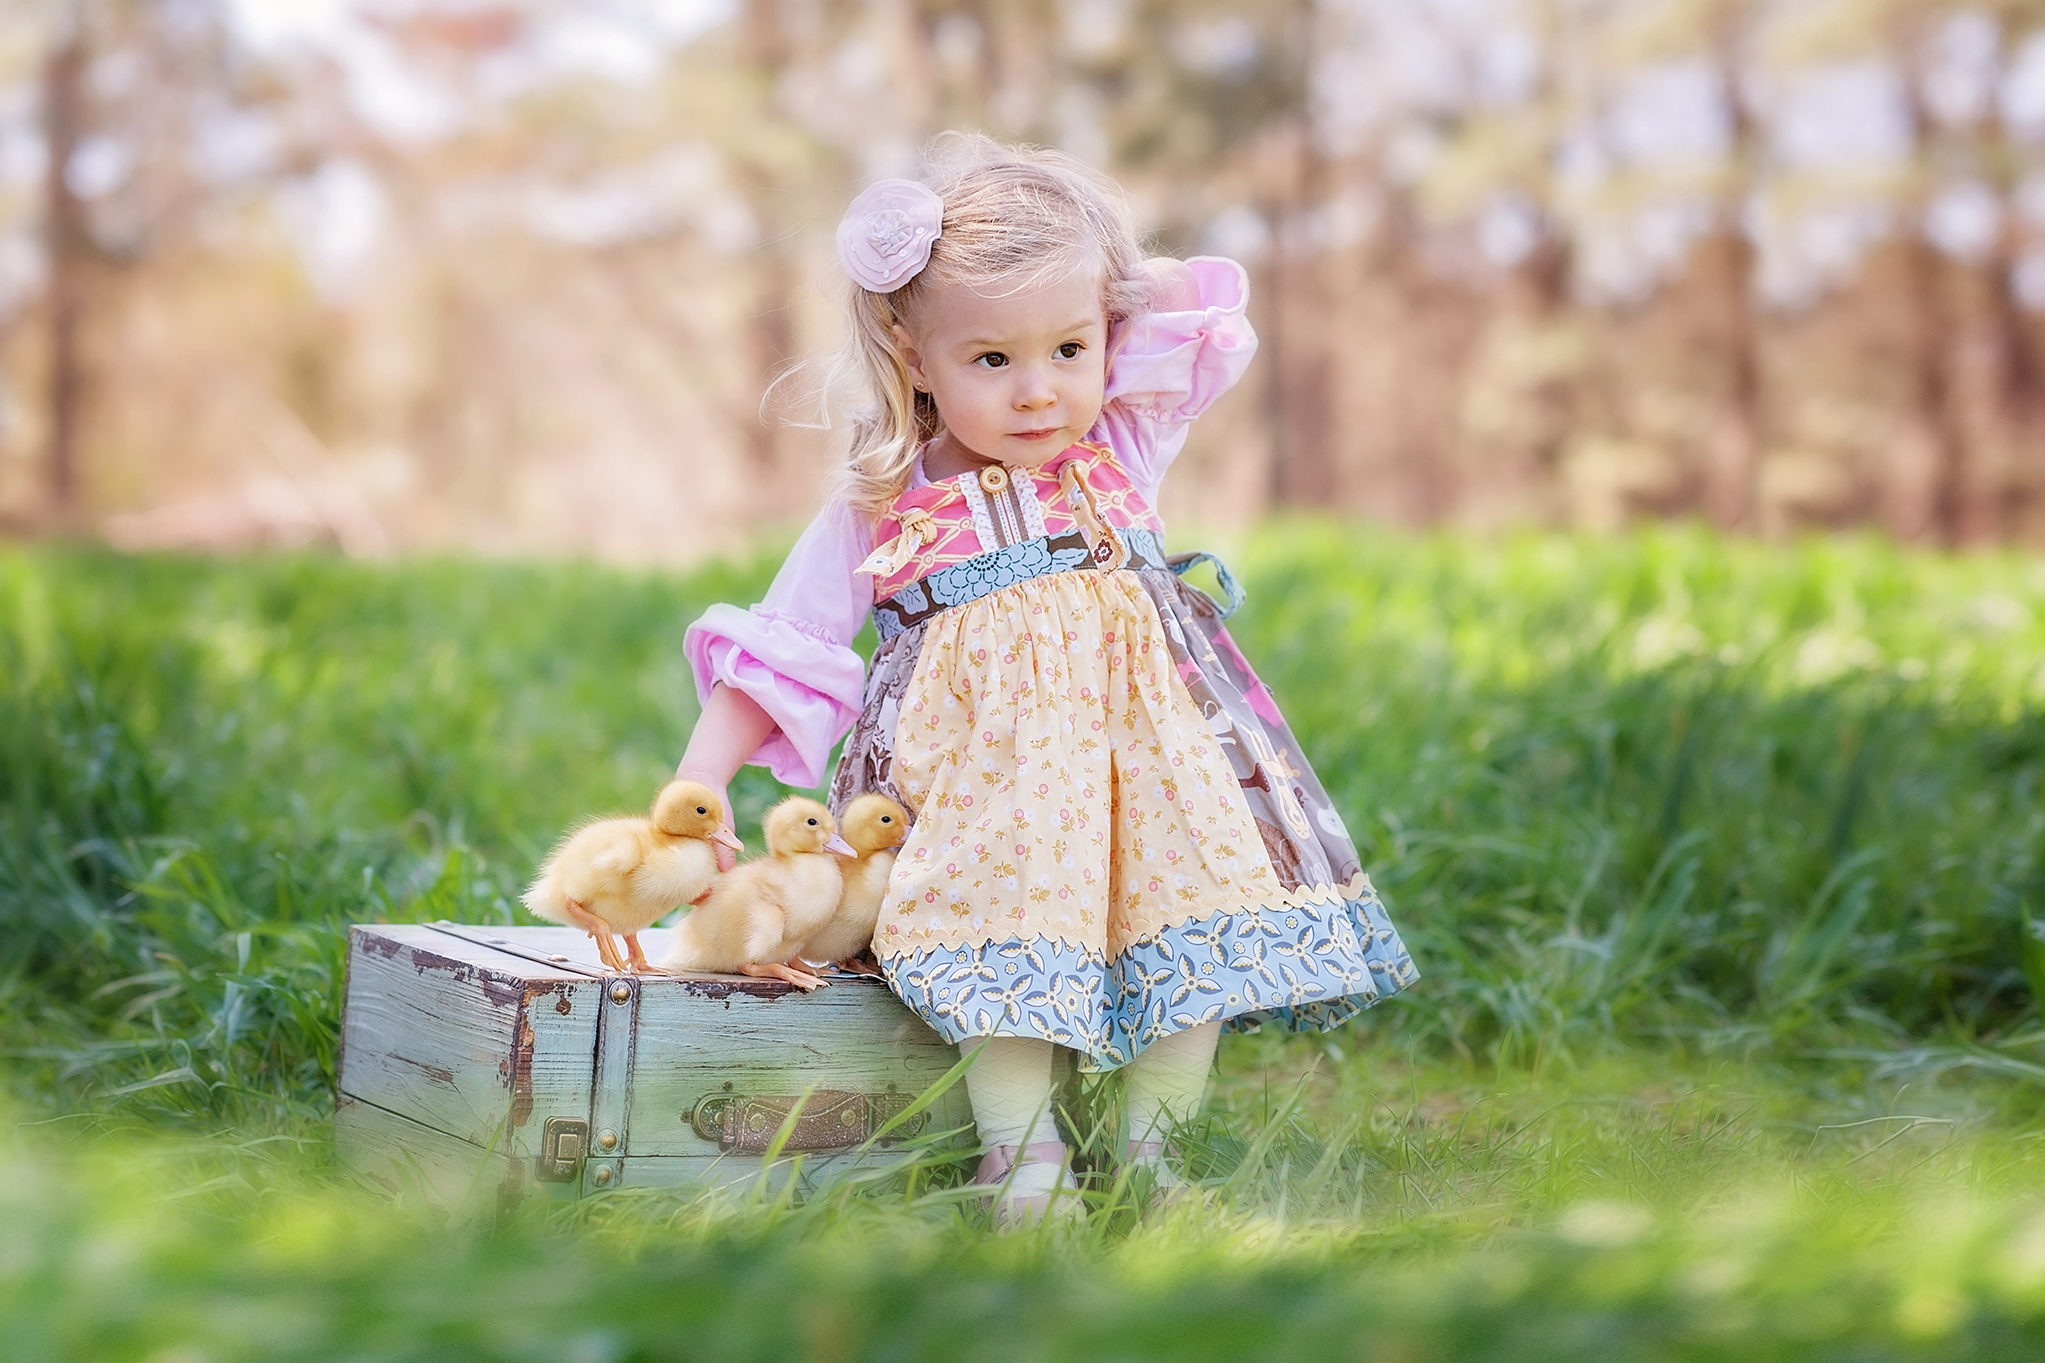 Girl-With-Ducklings-Freckled-Flower-Photography